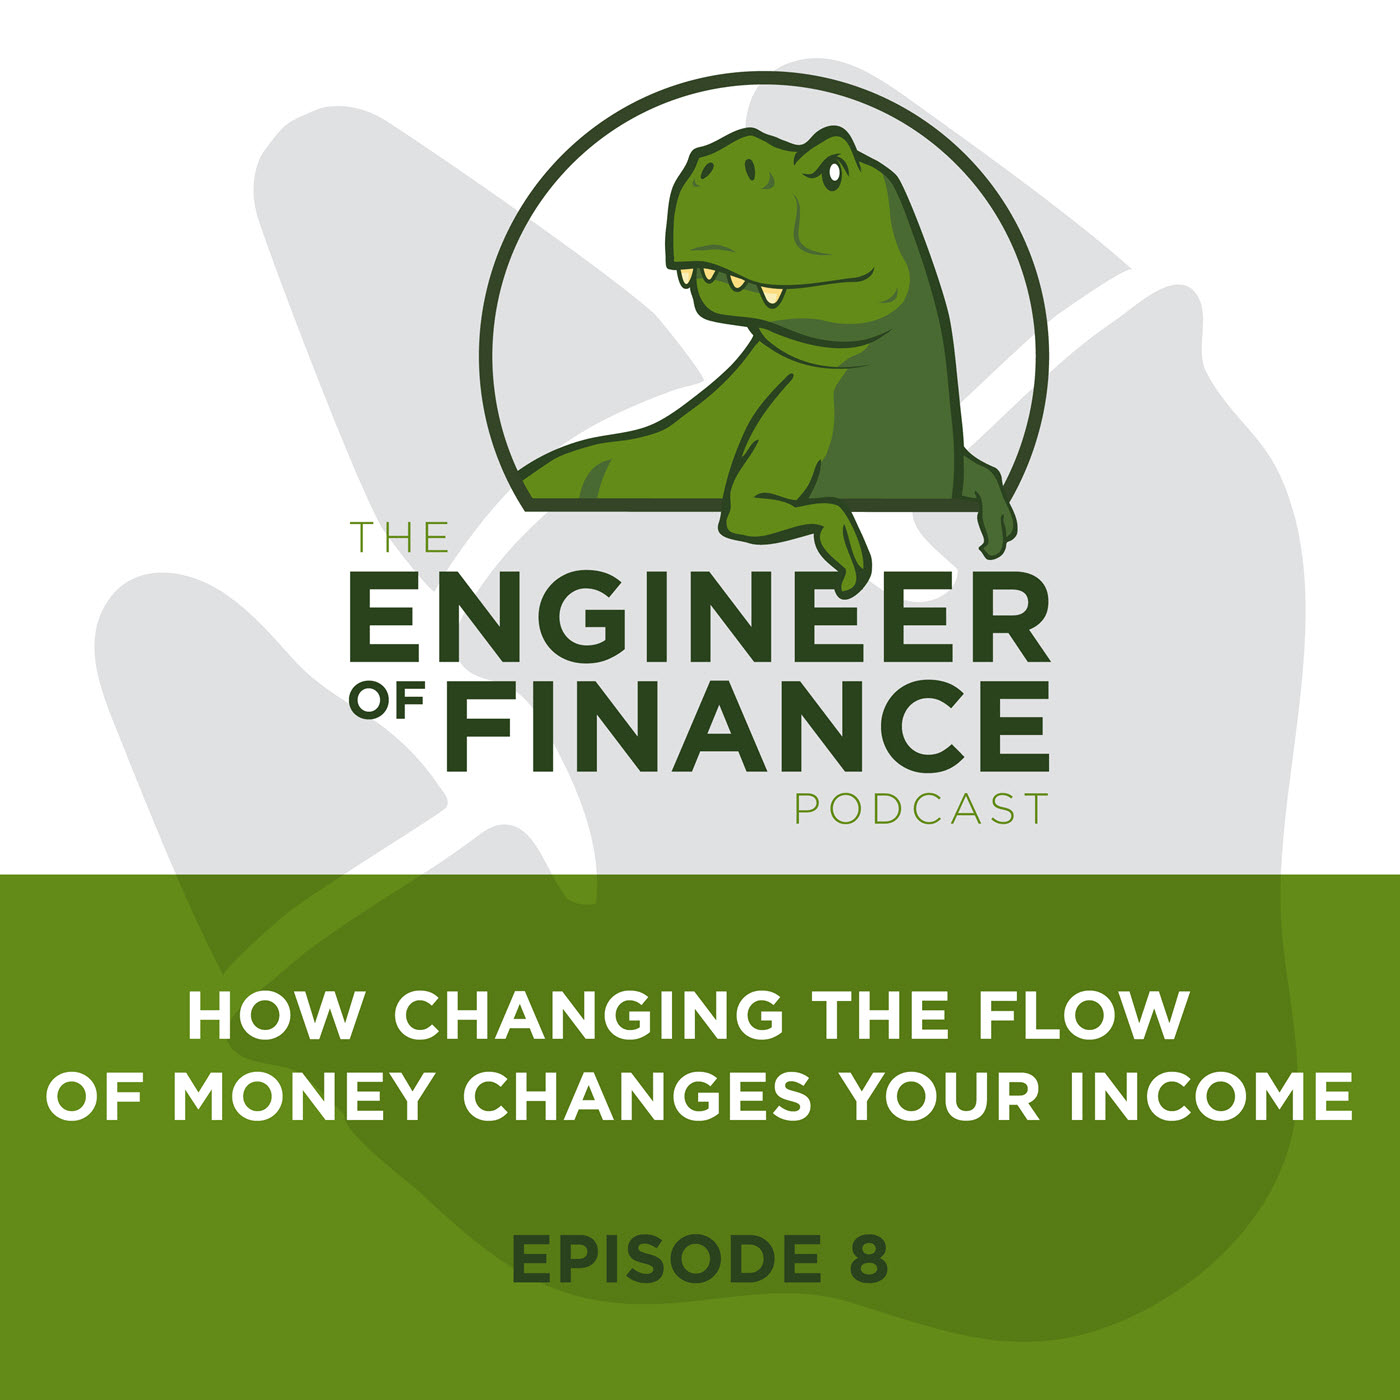 How Changing the Flow of Money Changes Your Income – Episode 8